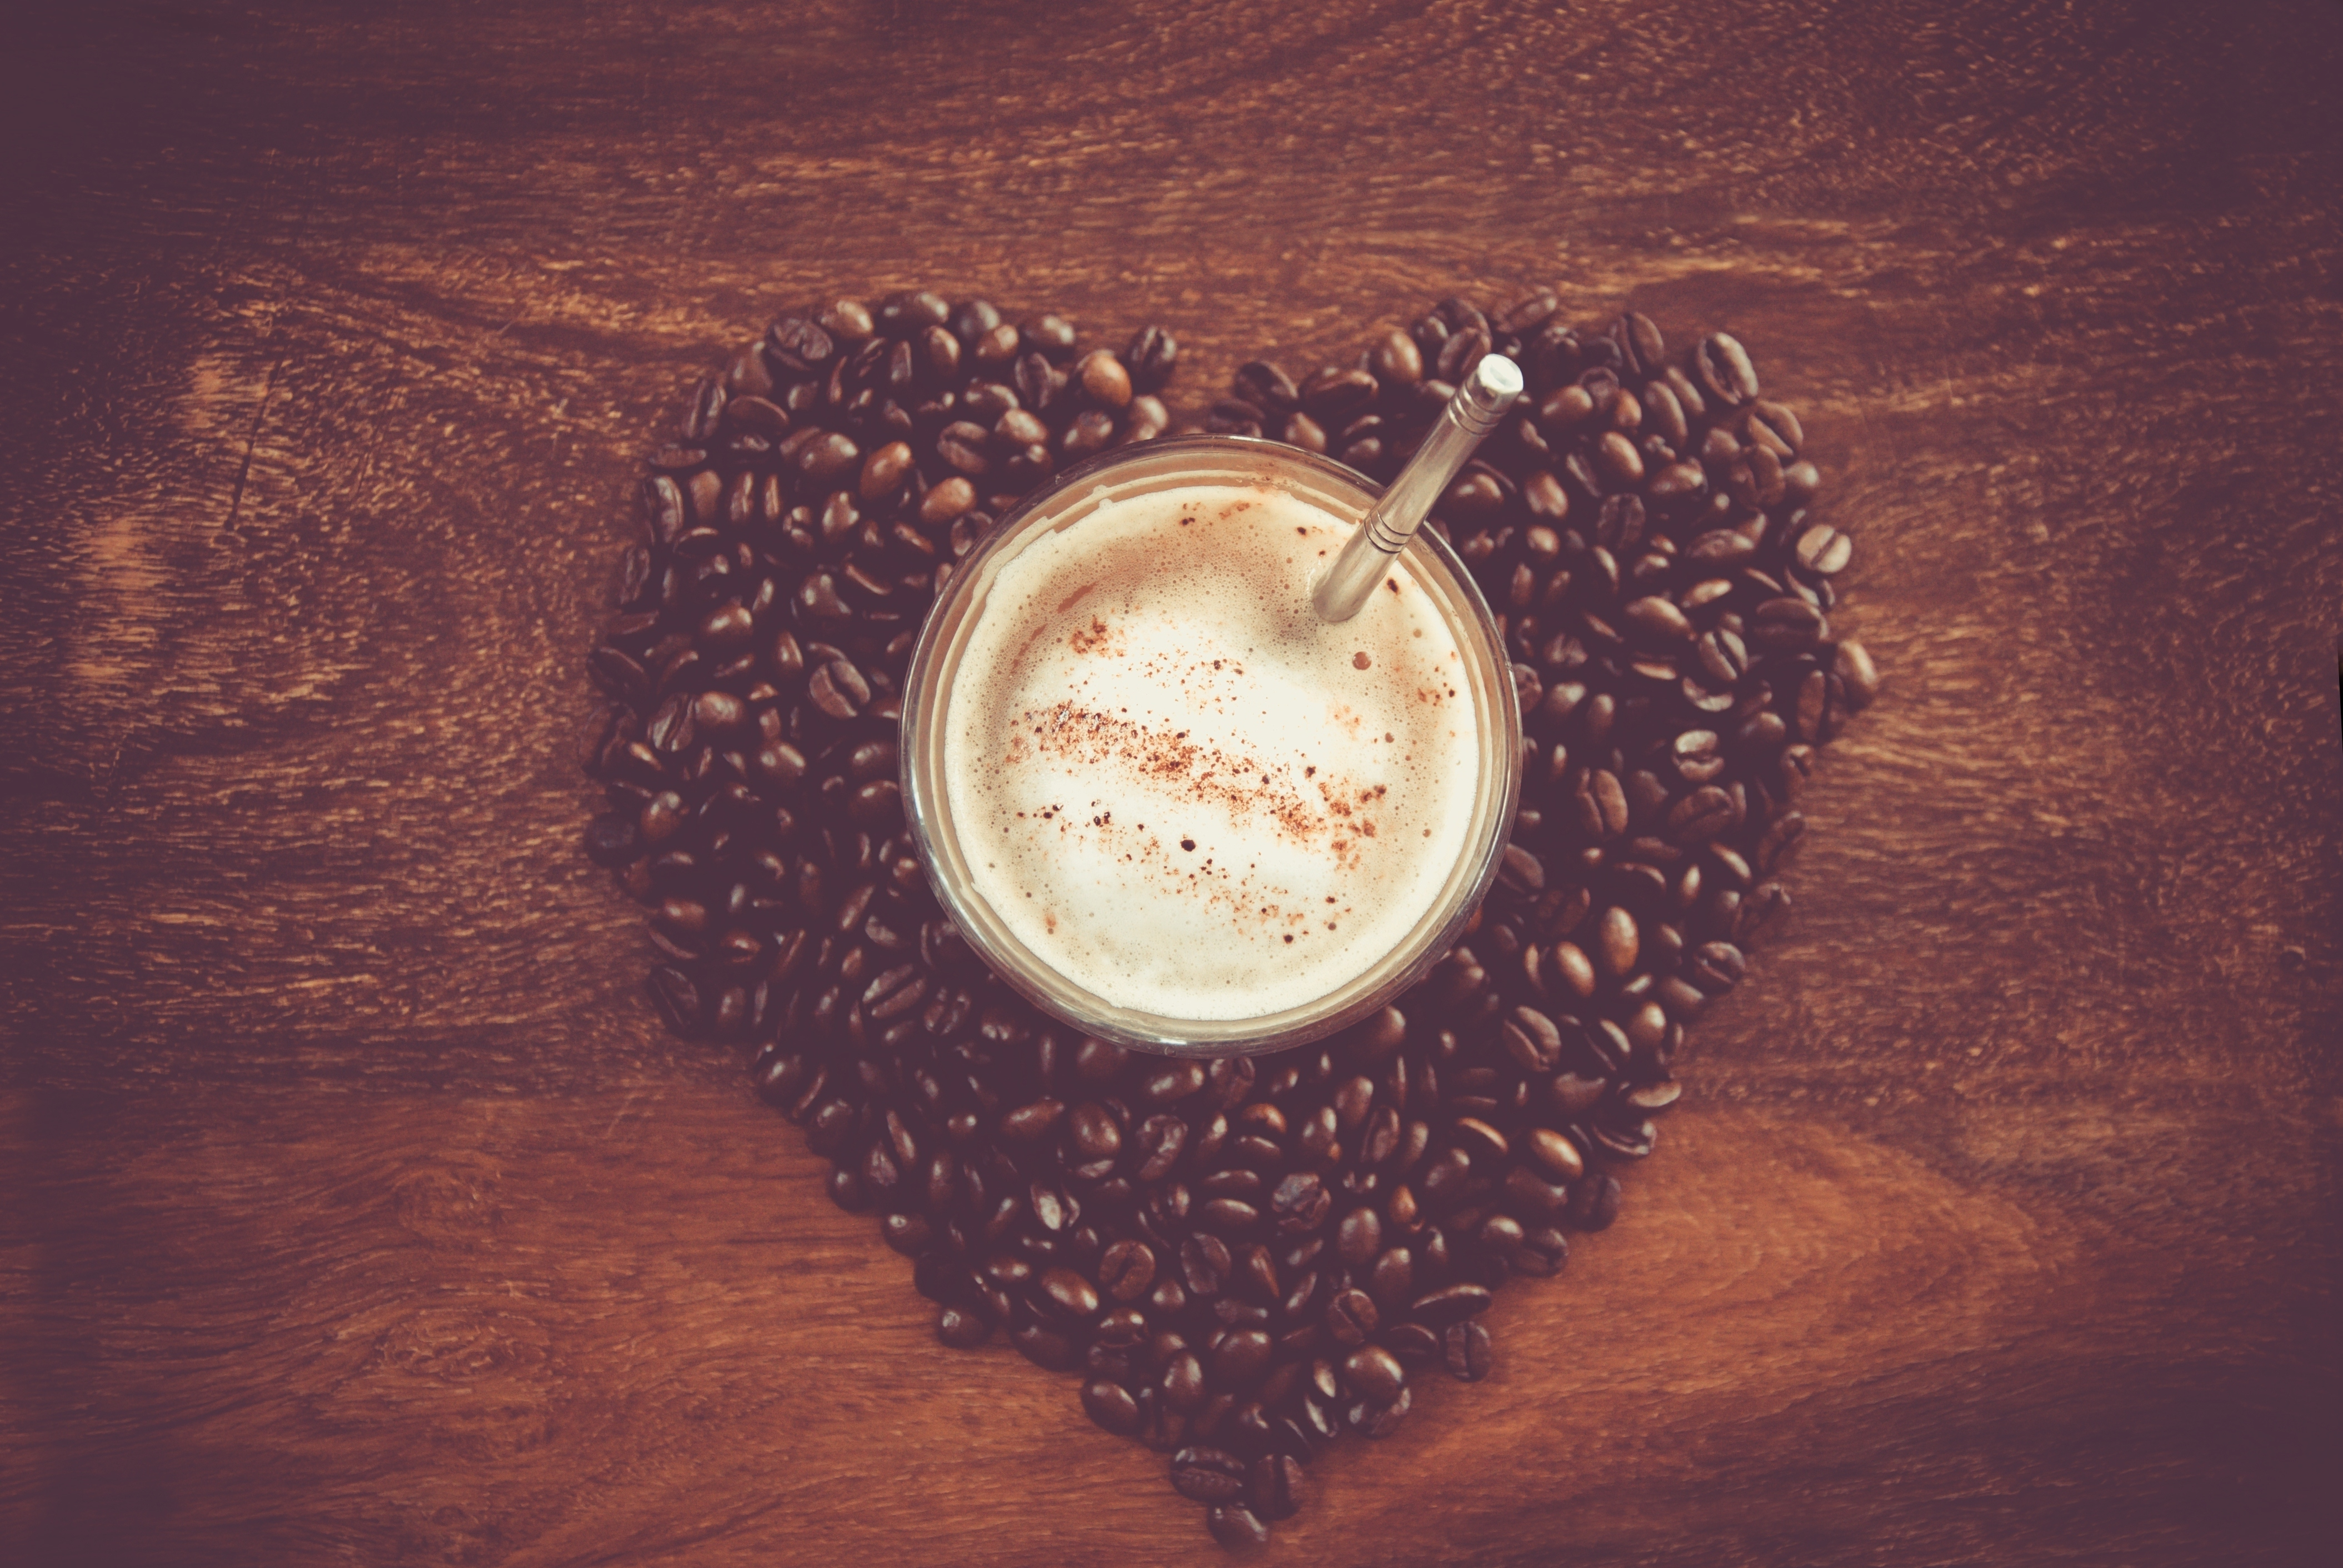 148076 download wallpaper Miscellanea, Miscellaneous, Coffee, Cup, Foam, Coffee Beans, Table screensavers and pictures for free